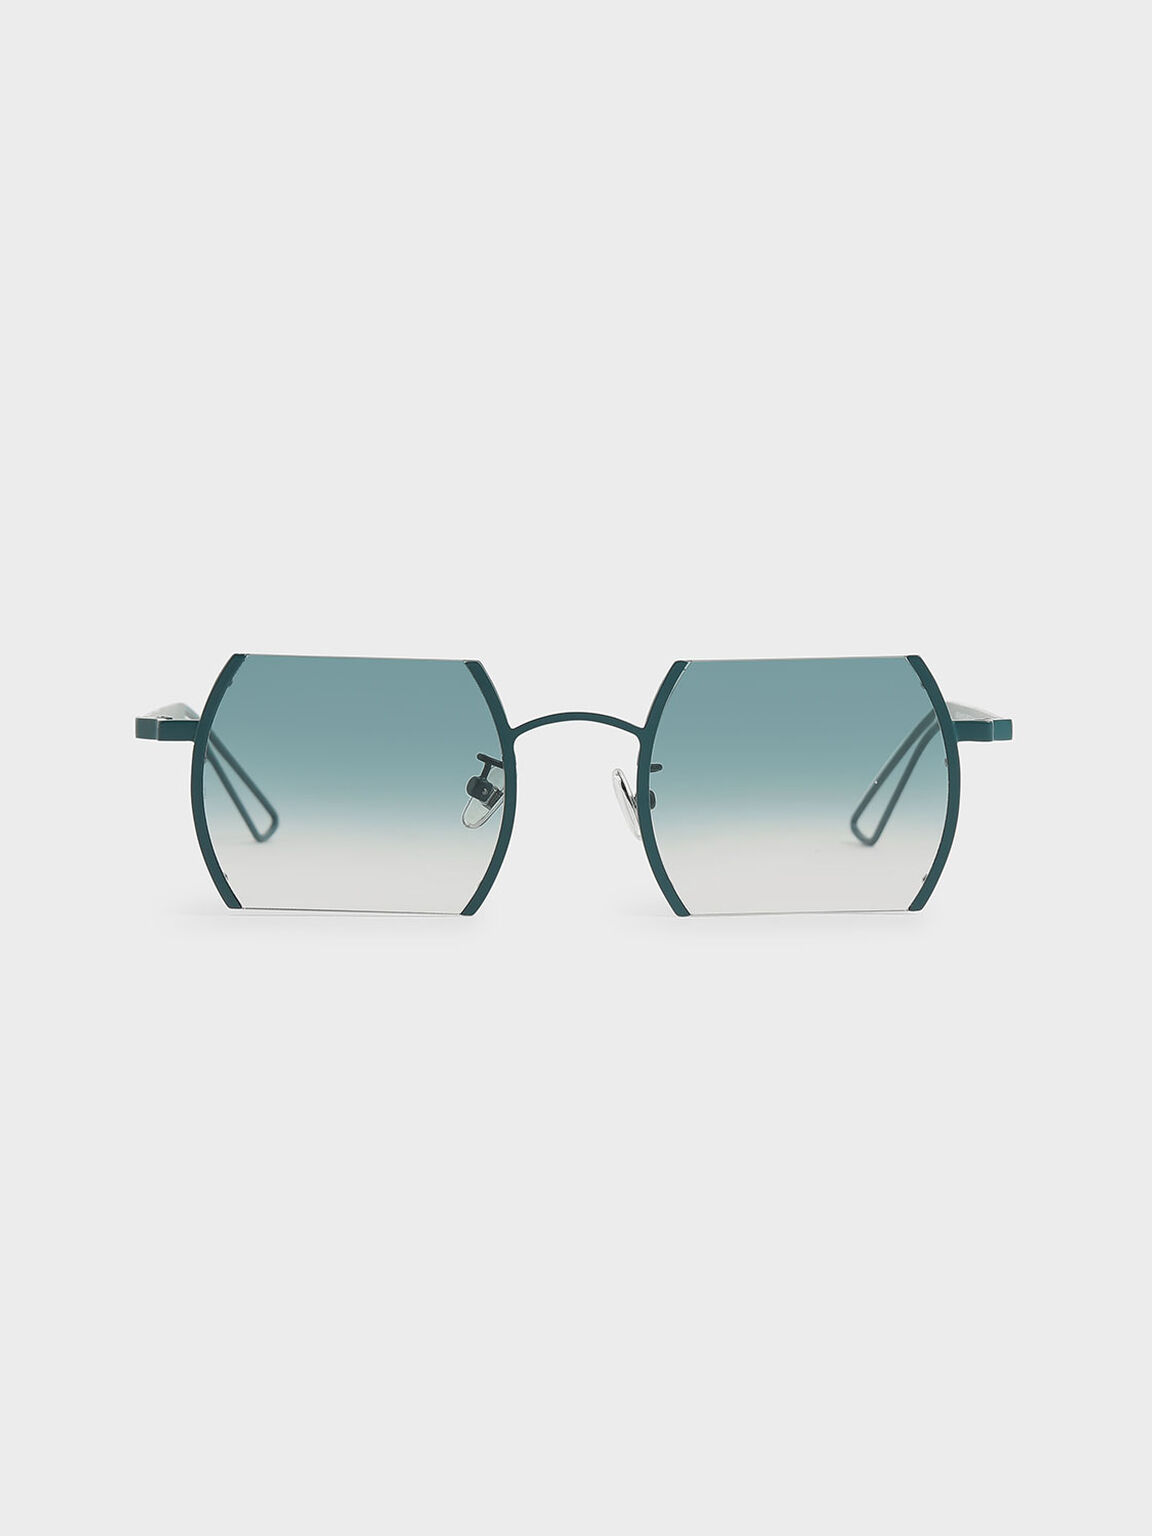 Cut-Off Frame Round Sunglasses, Blue, hi-res